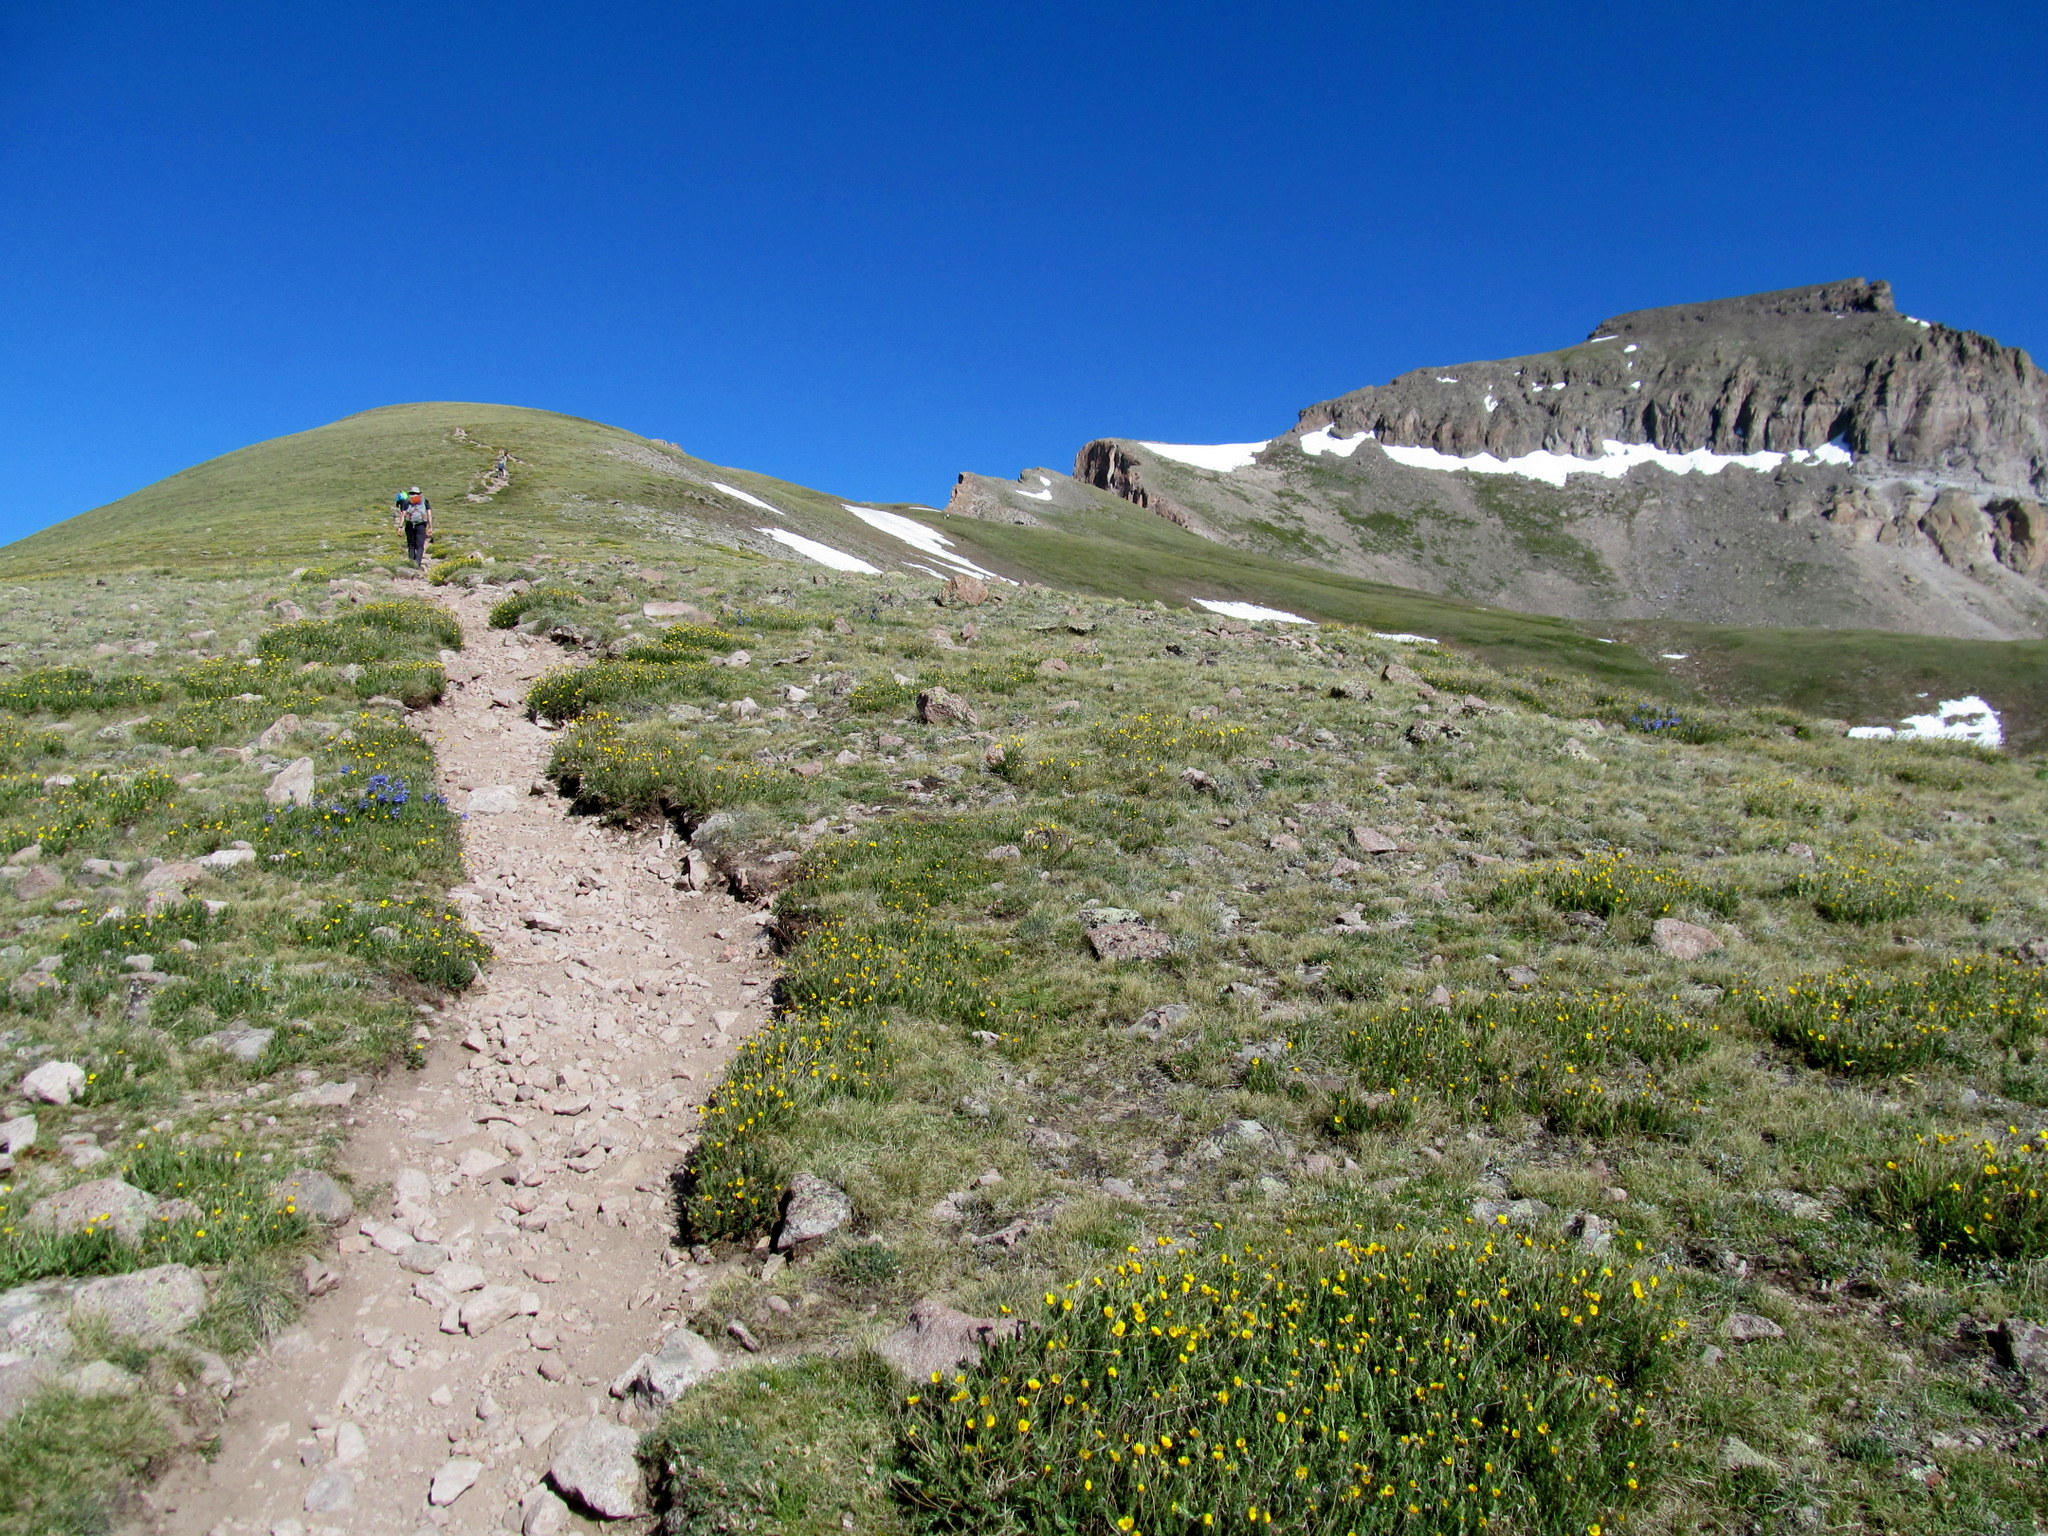 Photo: Steeper terrain below the summit block